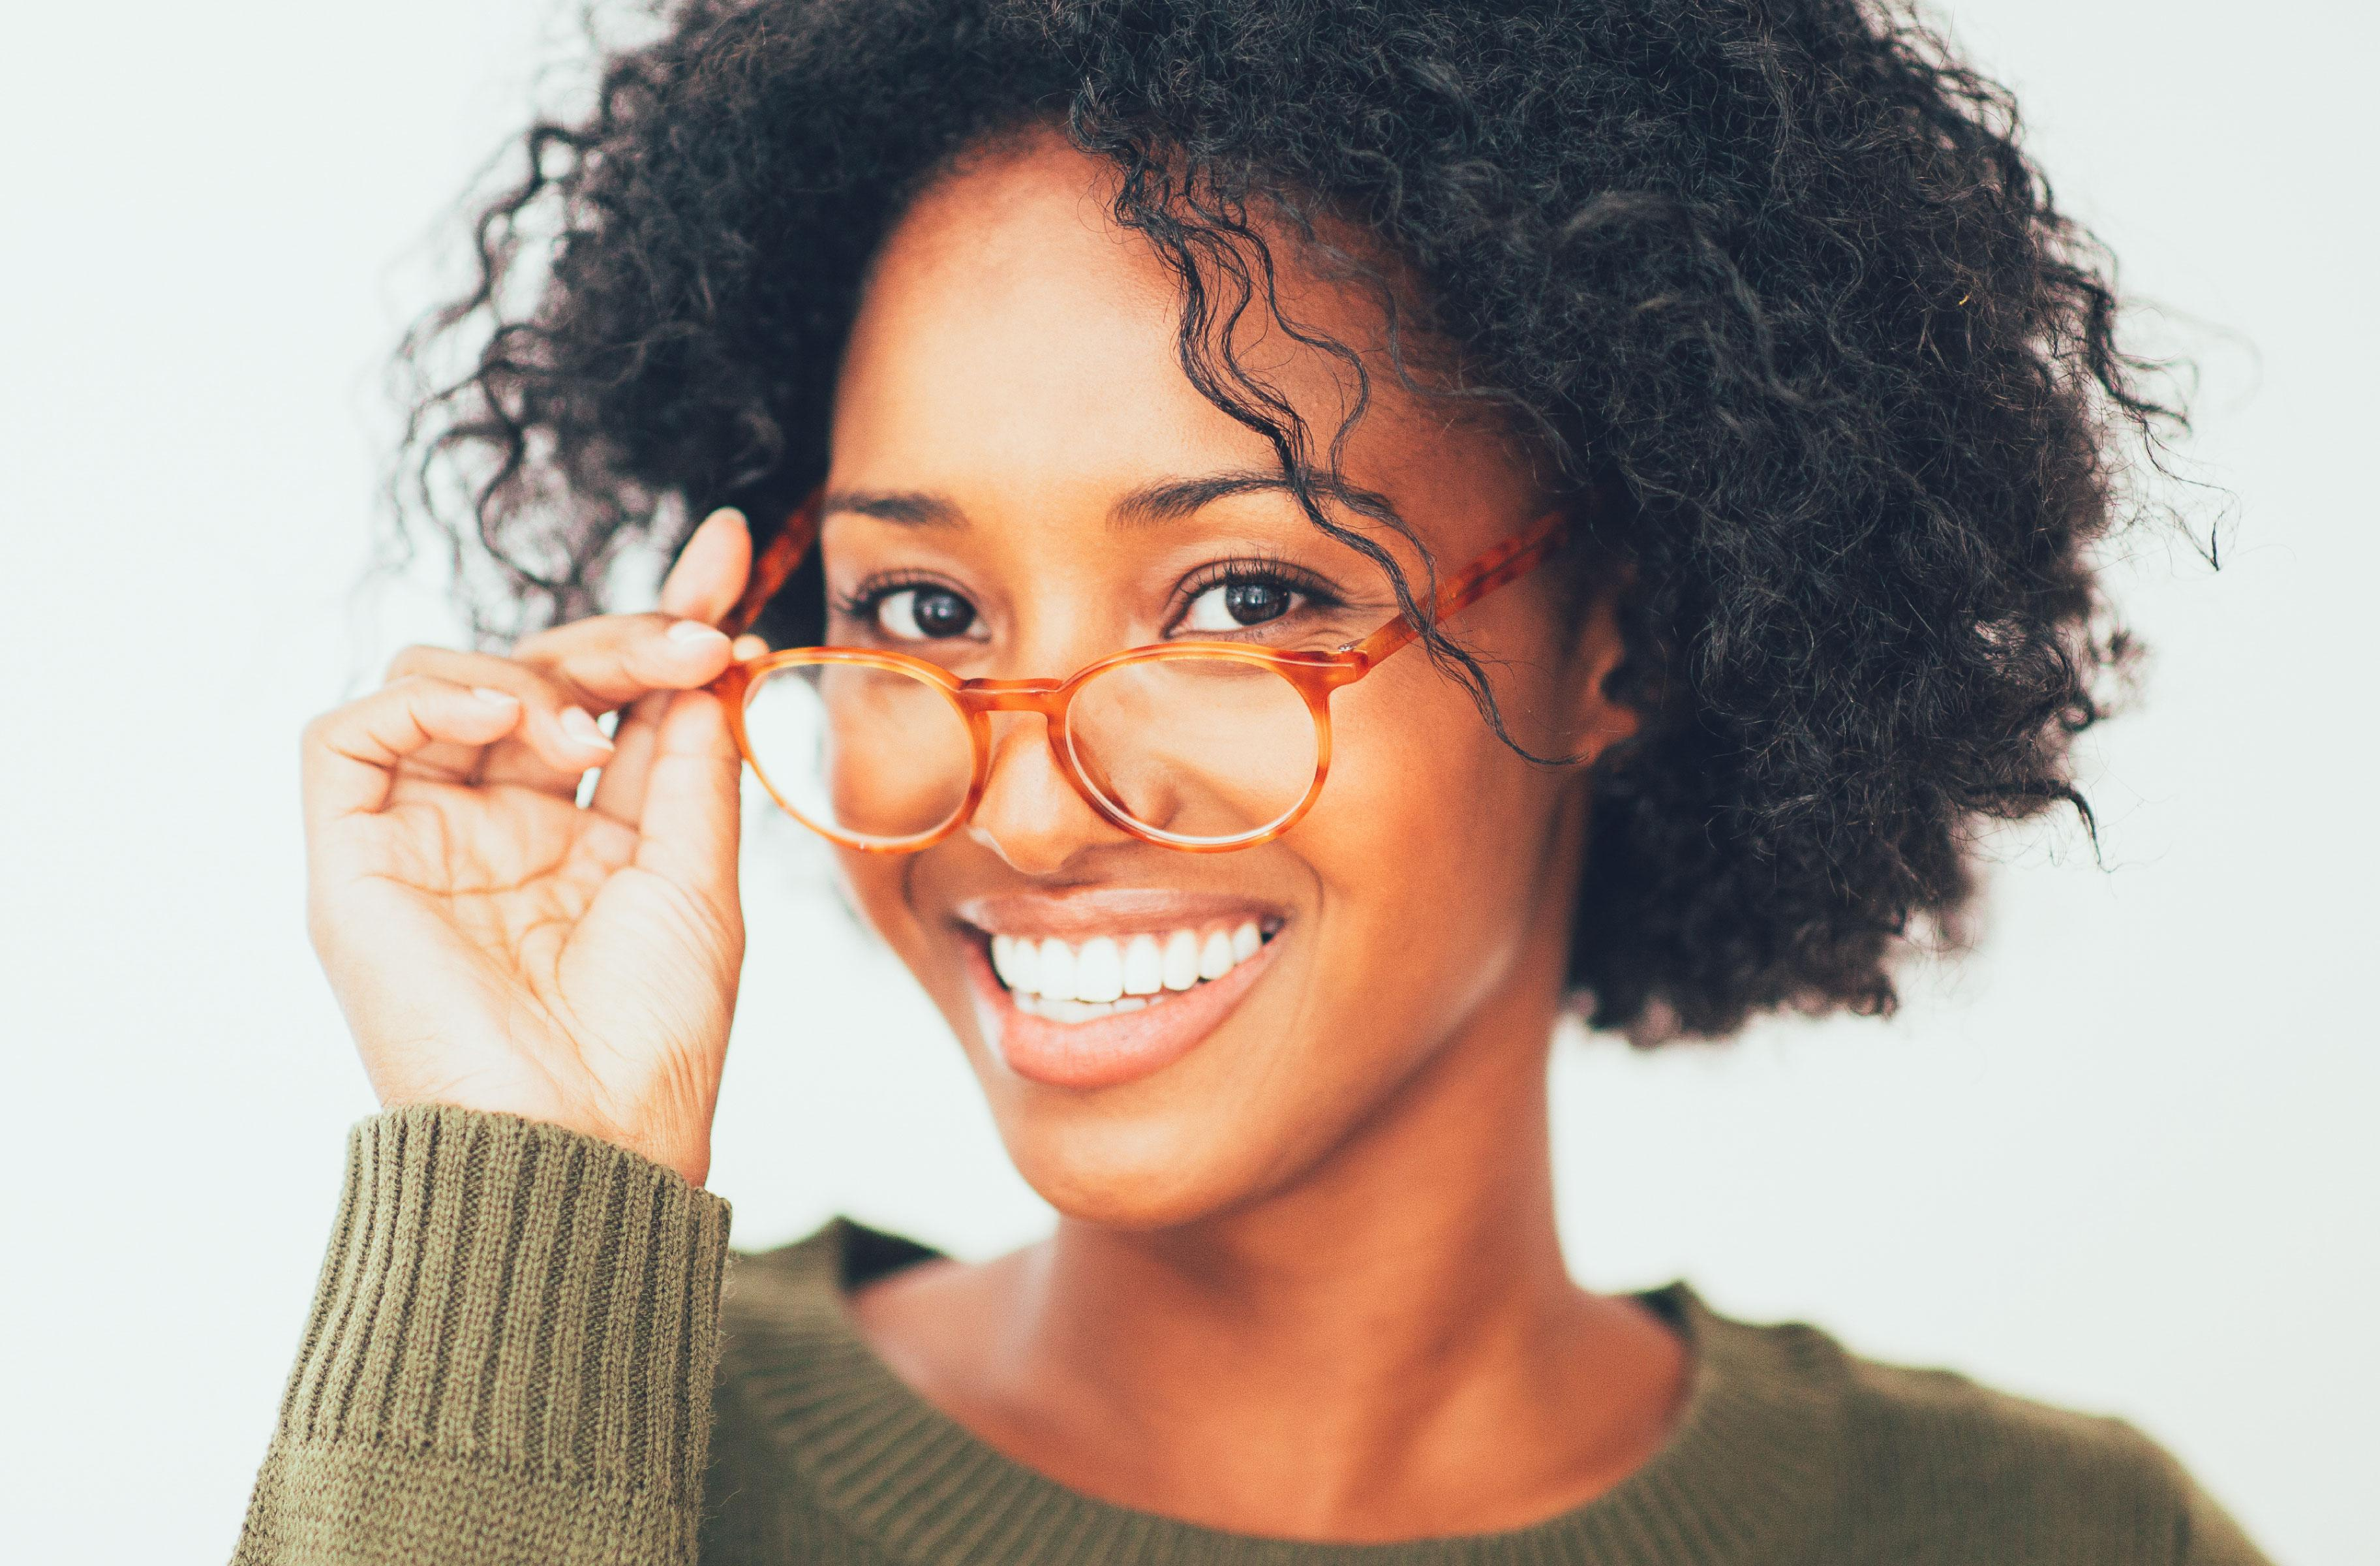 A woman is smiling and holding her glasses